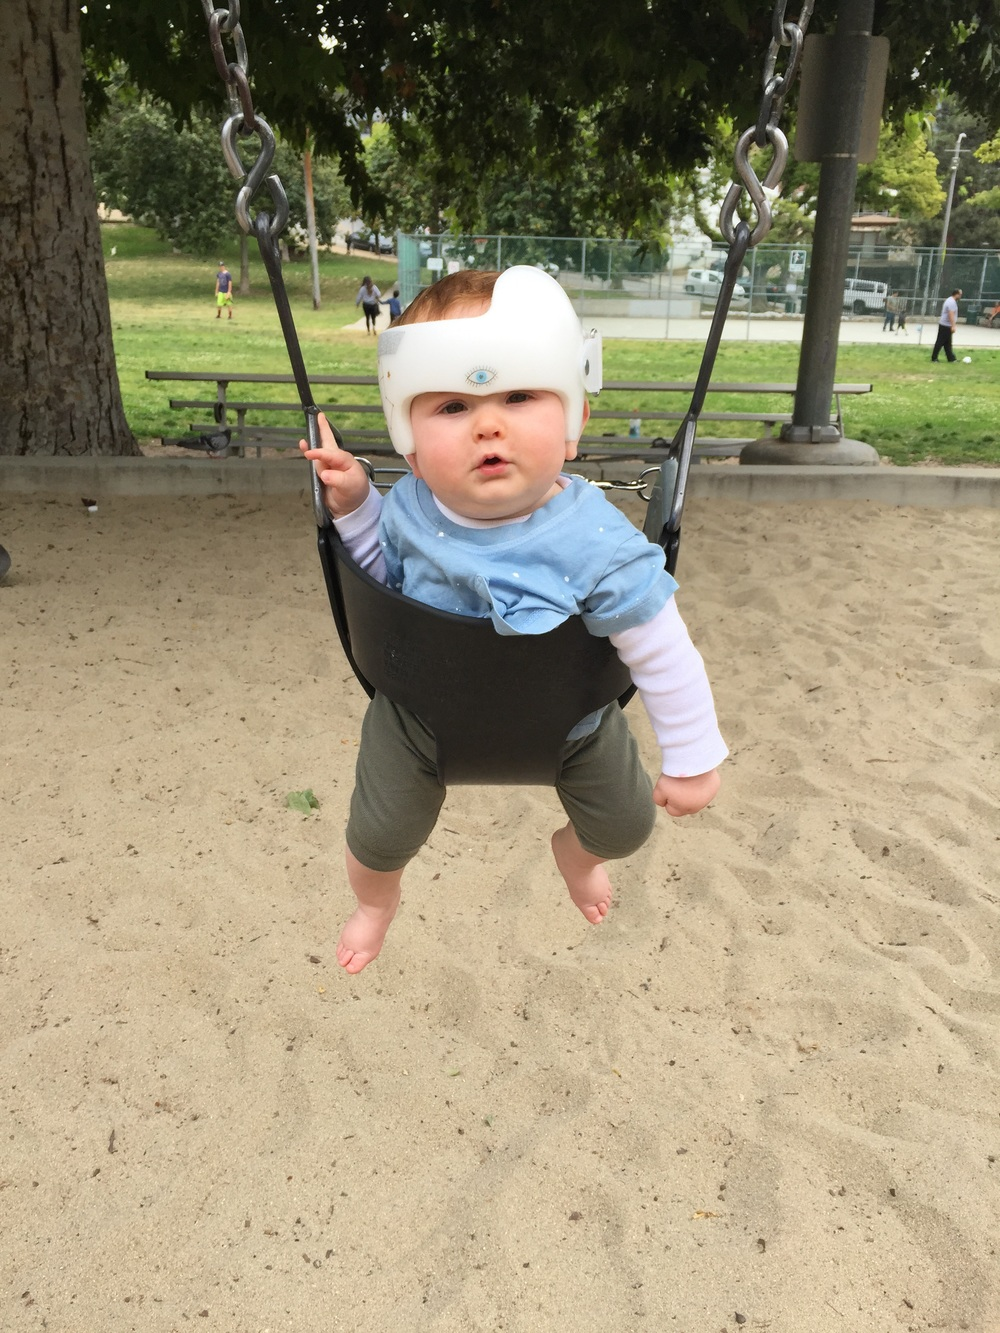 Nico took to swinging quickly